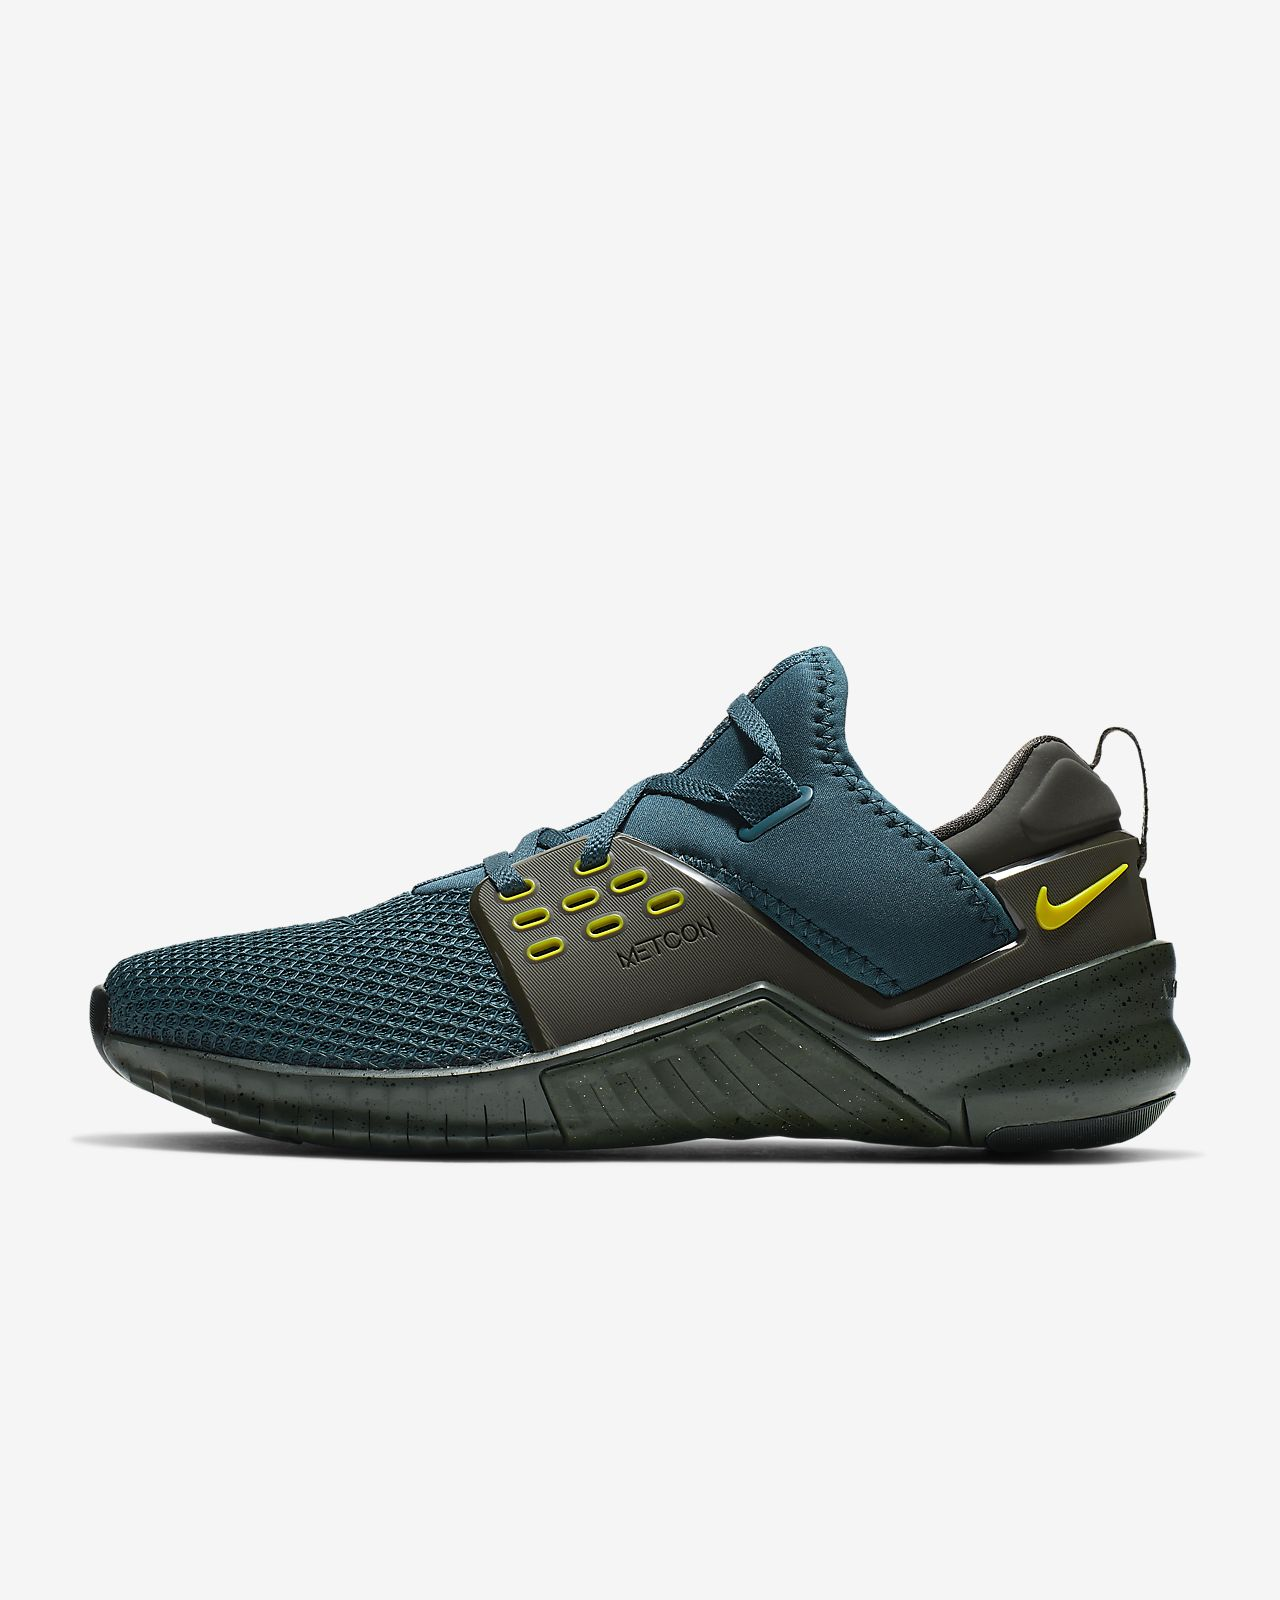 promo code 8f9ed 5d576 ... Chaussure de training Nike Free X Metcon 2 pour Homme